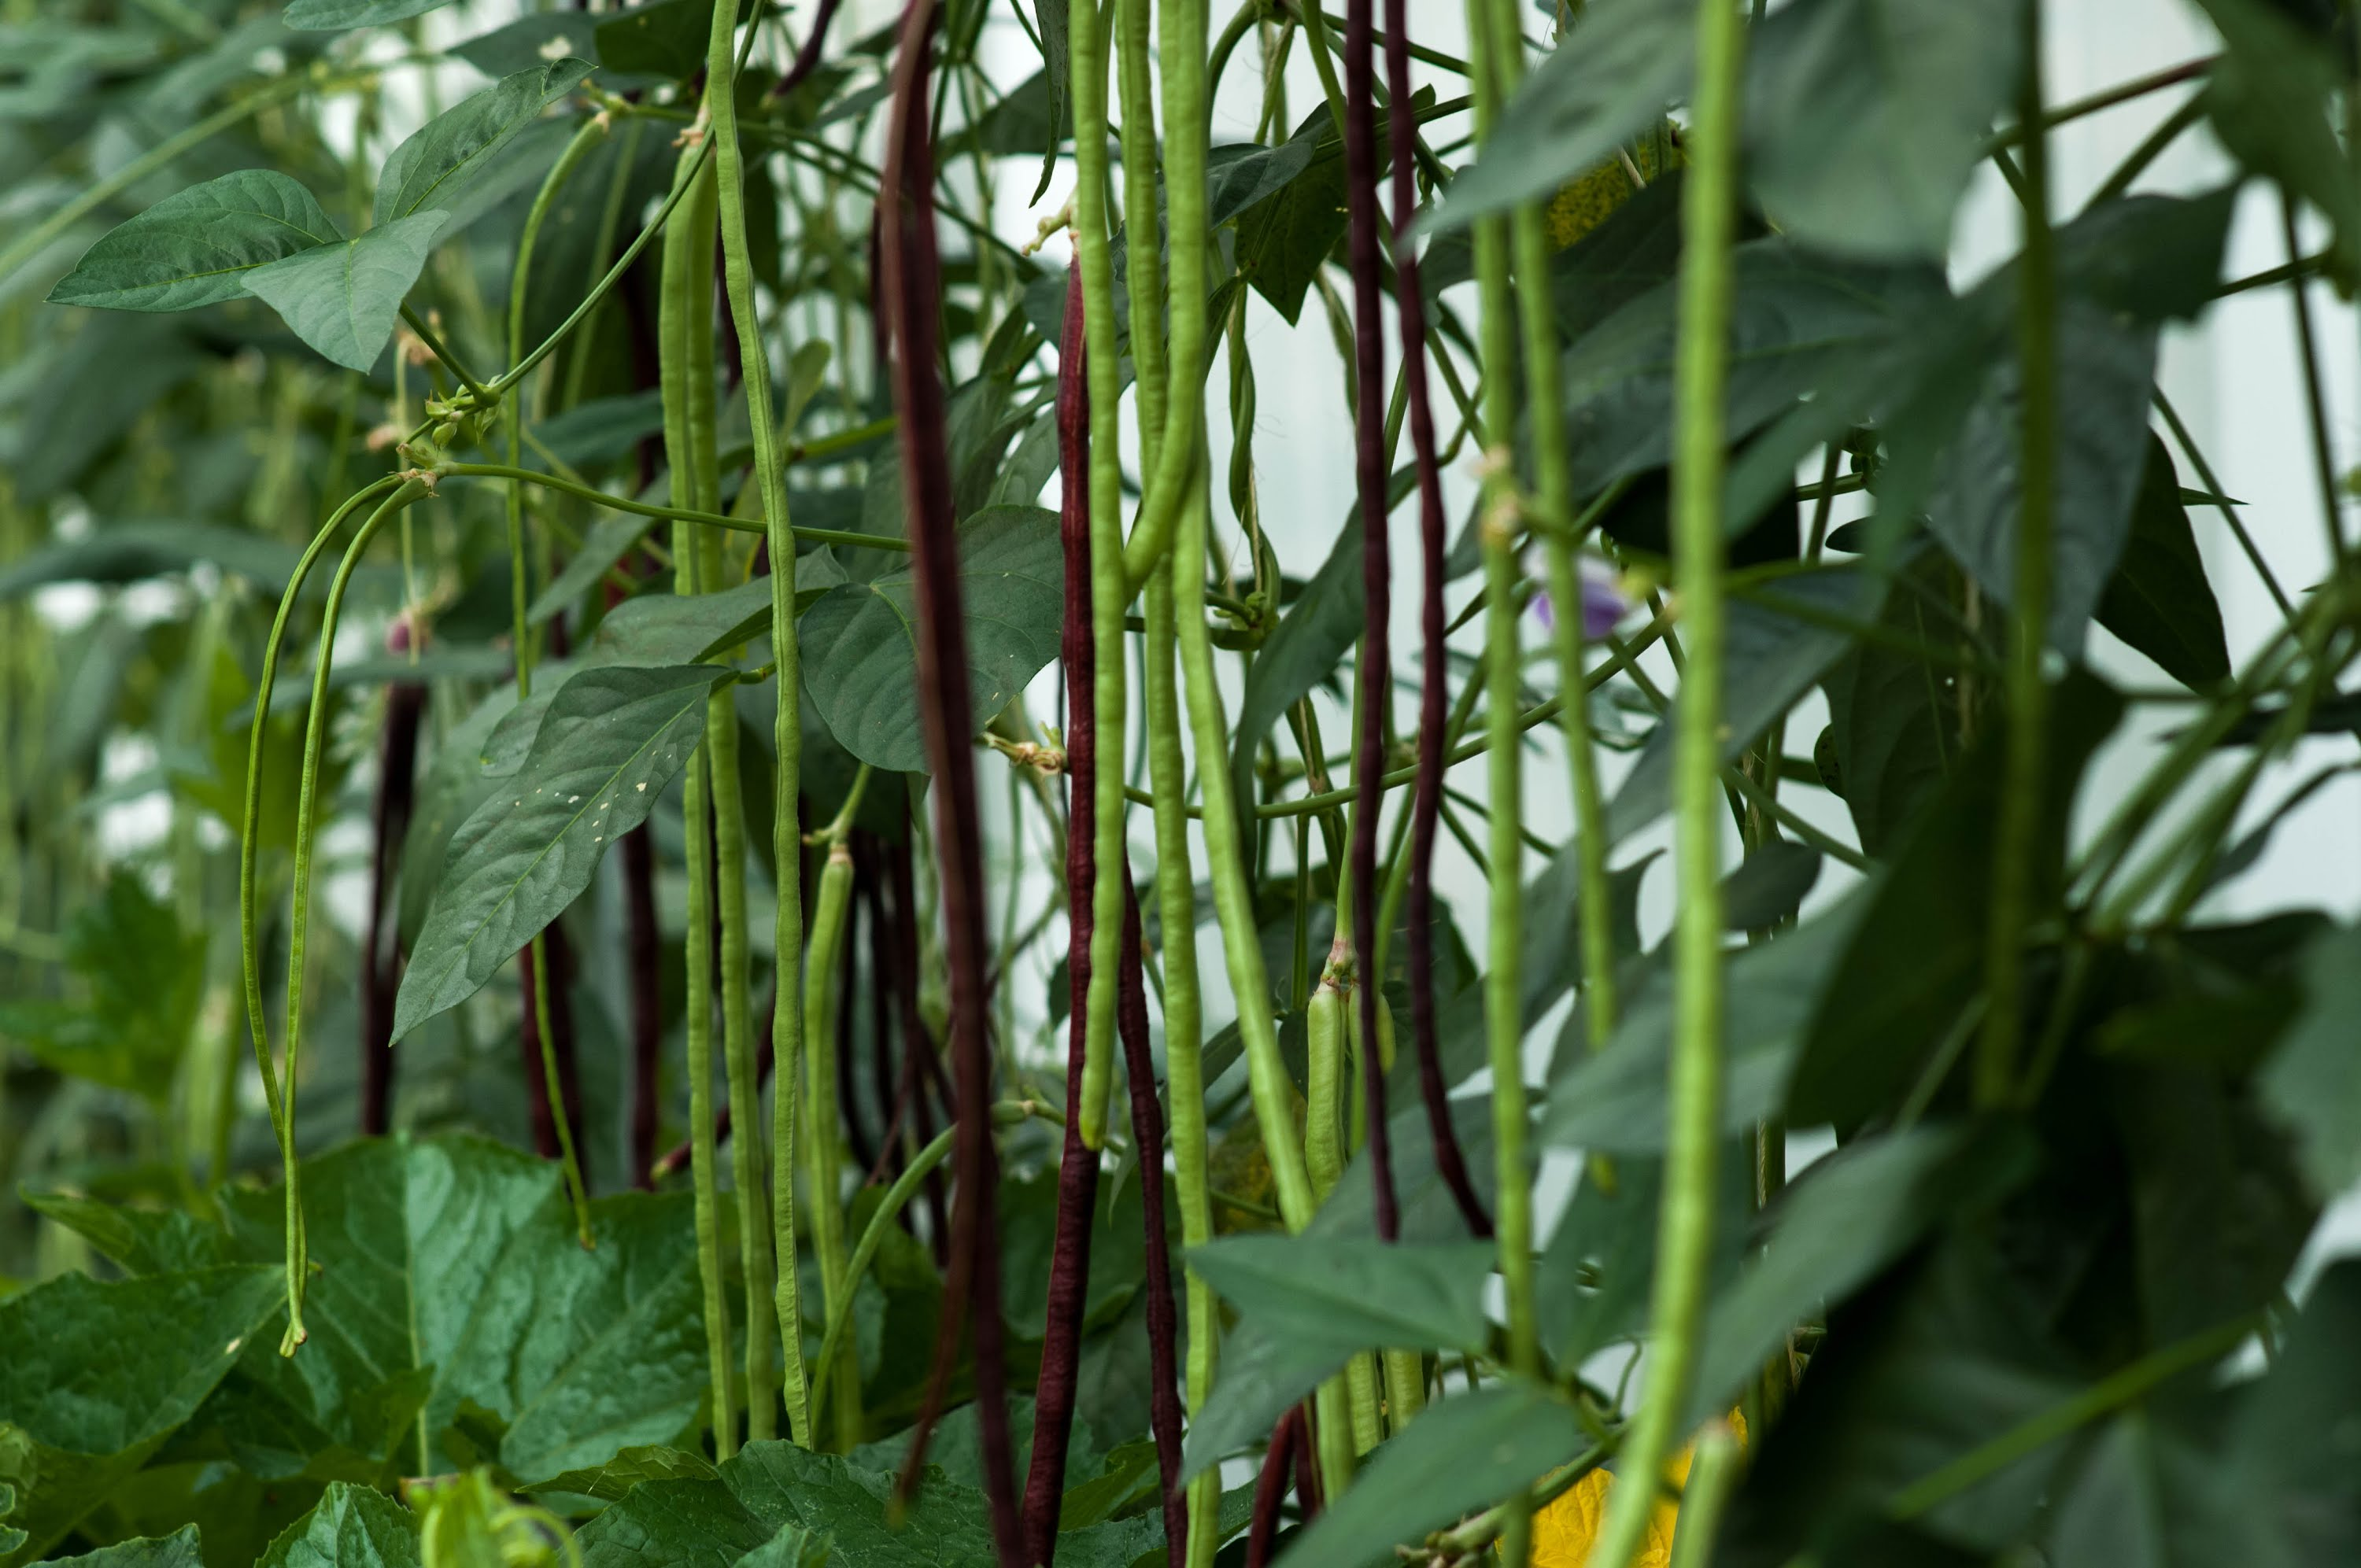 How To Grow Long Bean Super Productive 高产豇豆